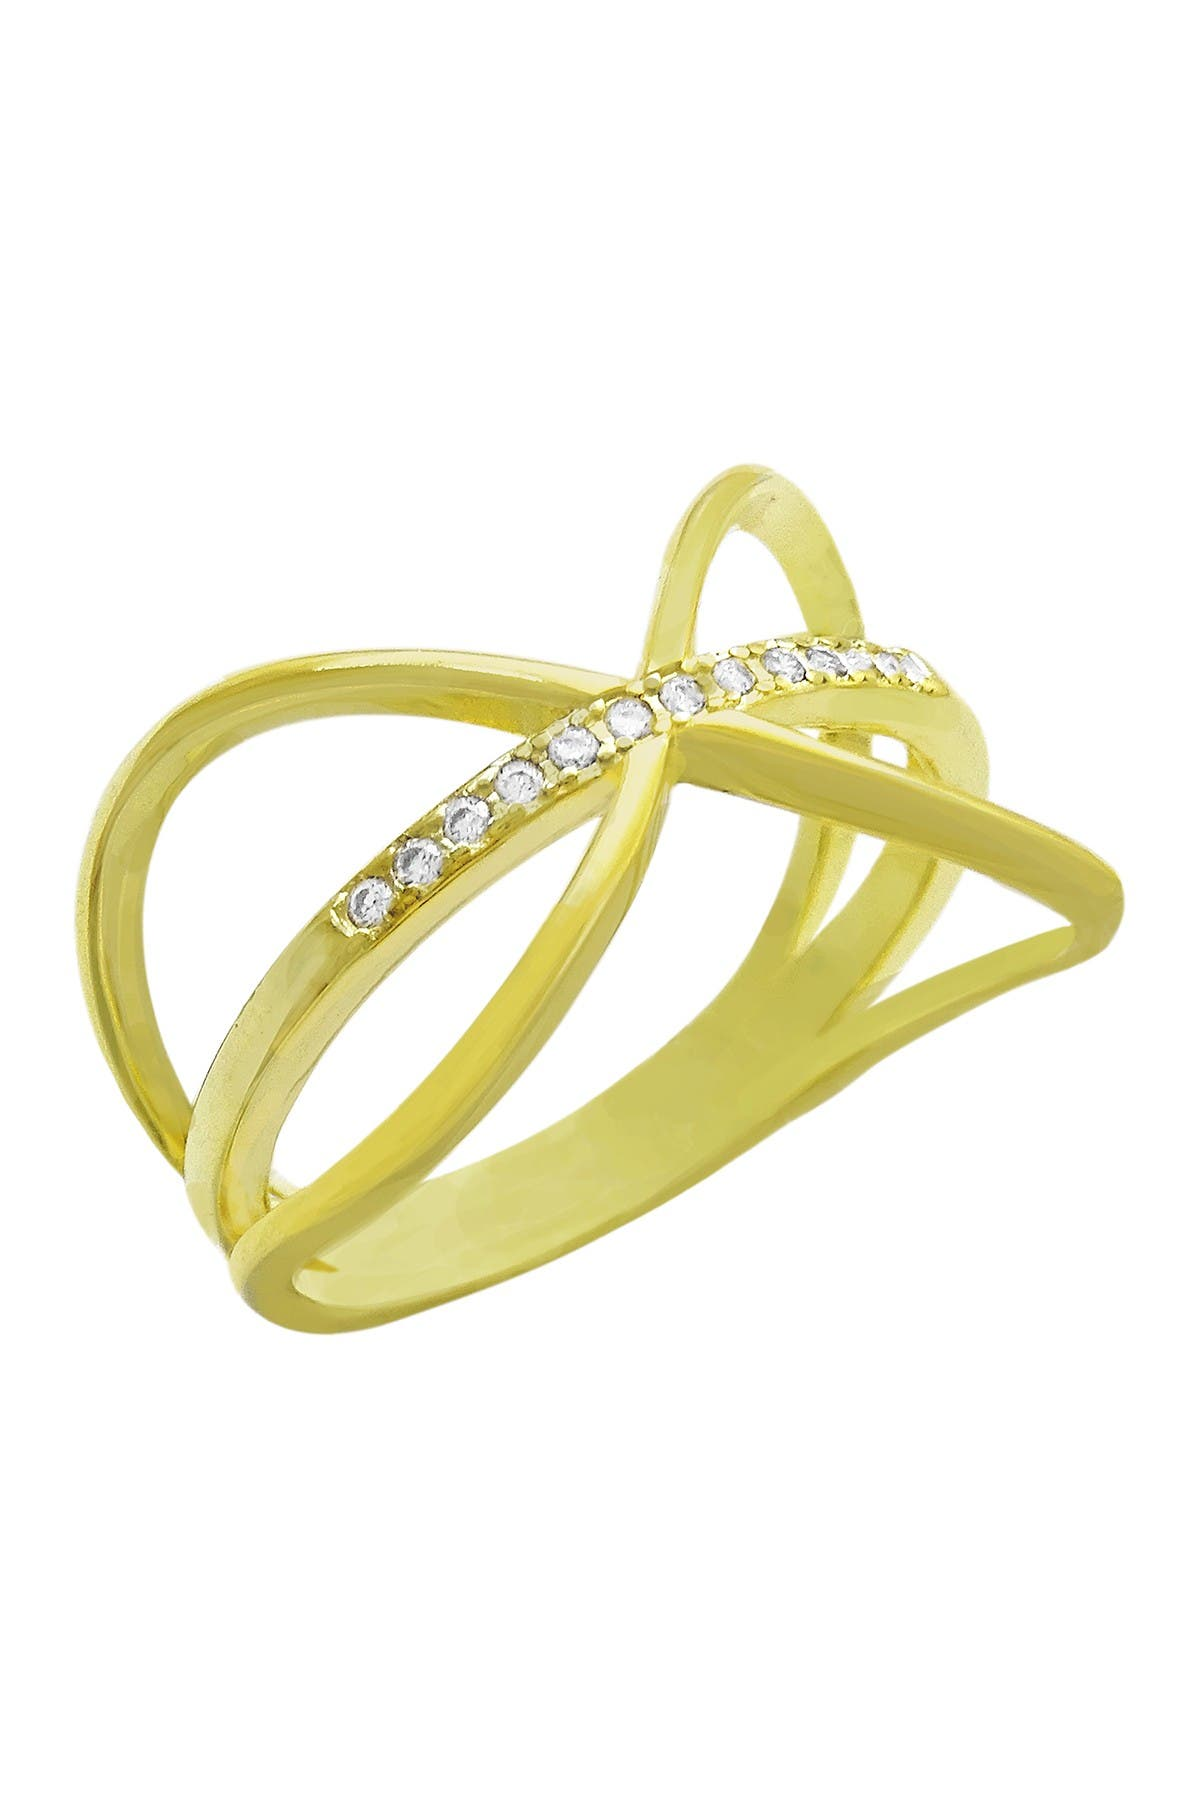 Image of Savvy Cie 18K Gold Vermeil Sterling Silver CZ Ring